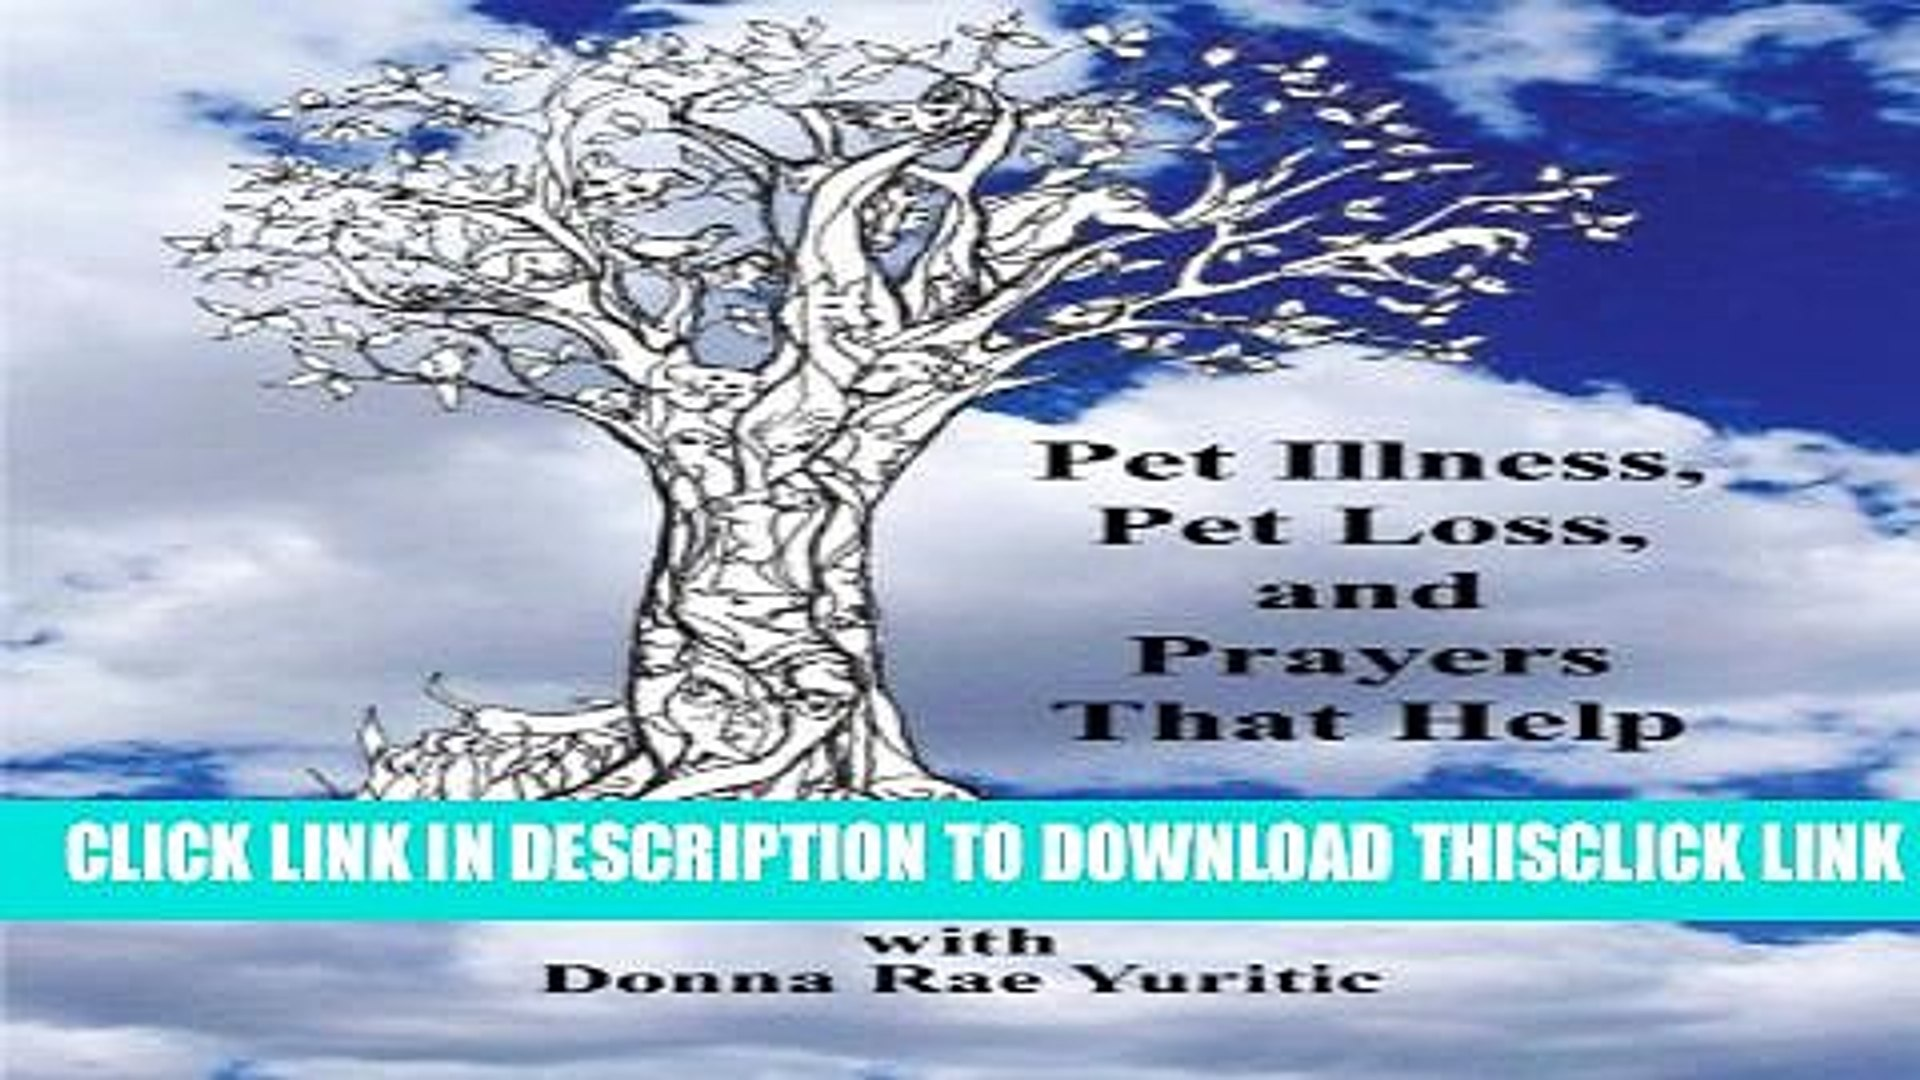 [PDF] Pet Illness, Pet Loss, and Prayers That Help Popular Online